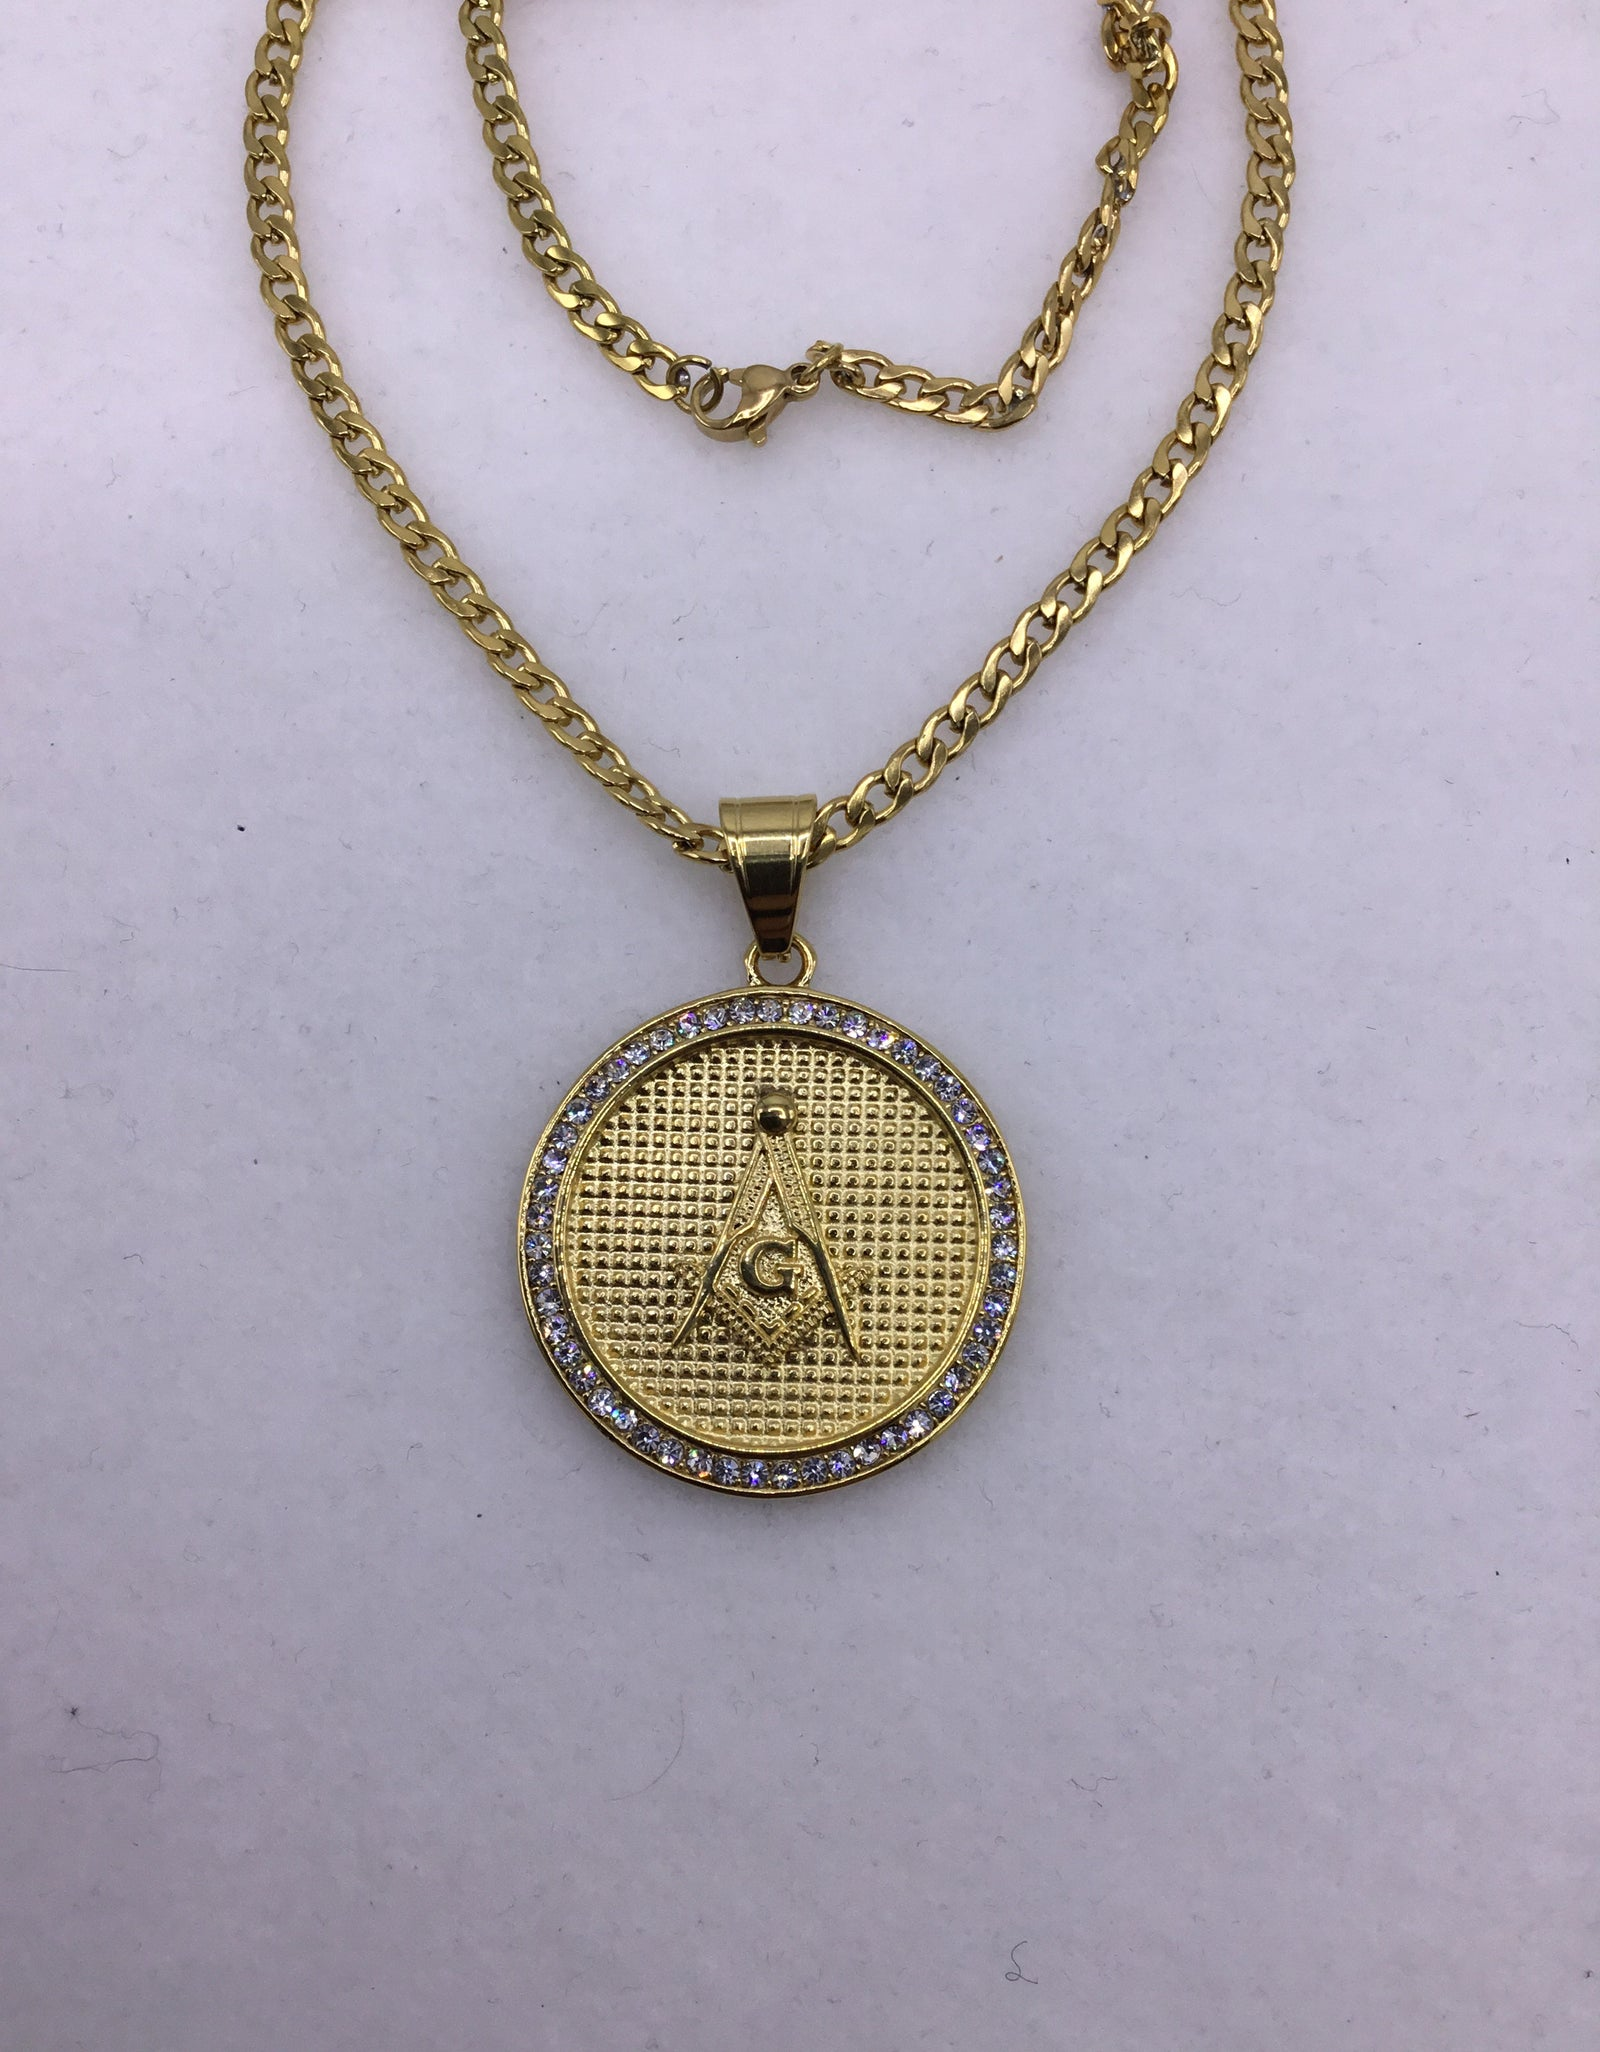 18k gold over stainless steel Medallion with Cubic Zirconia includes Cuban link chain set